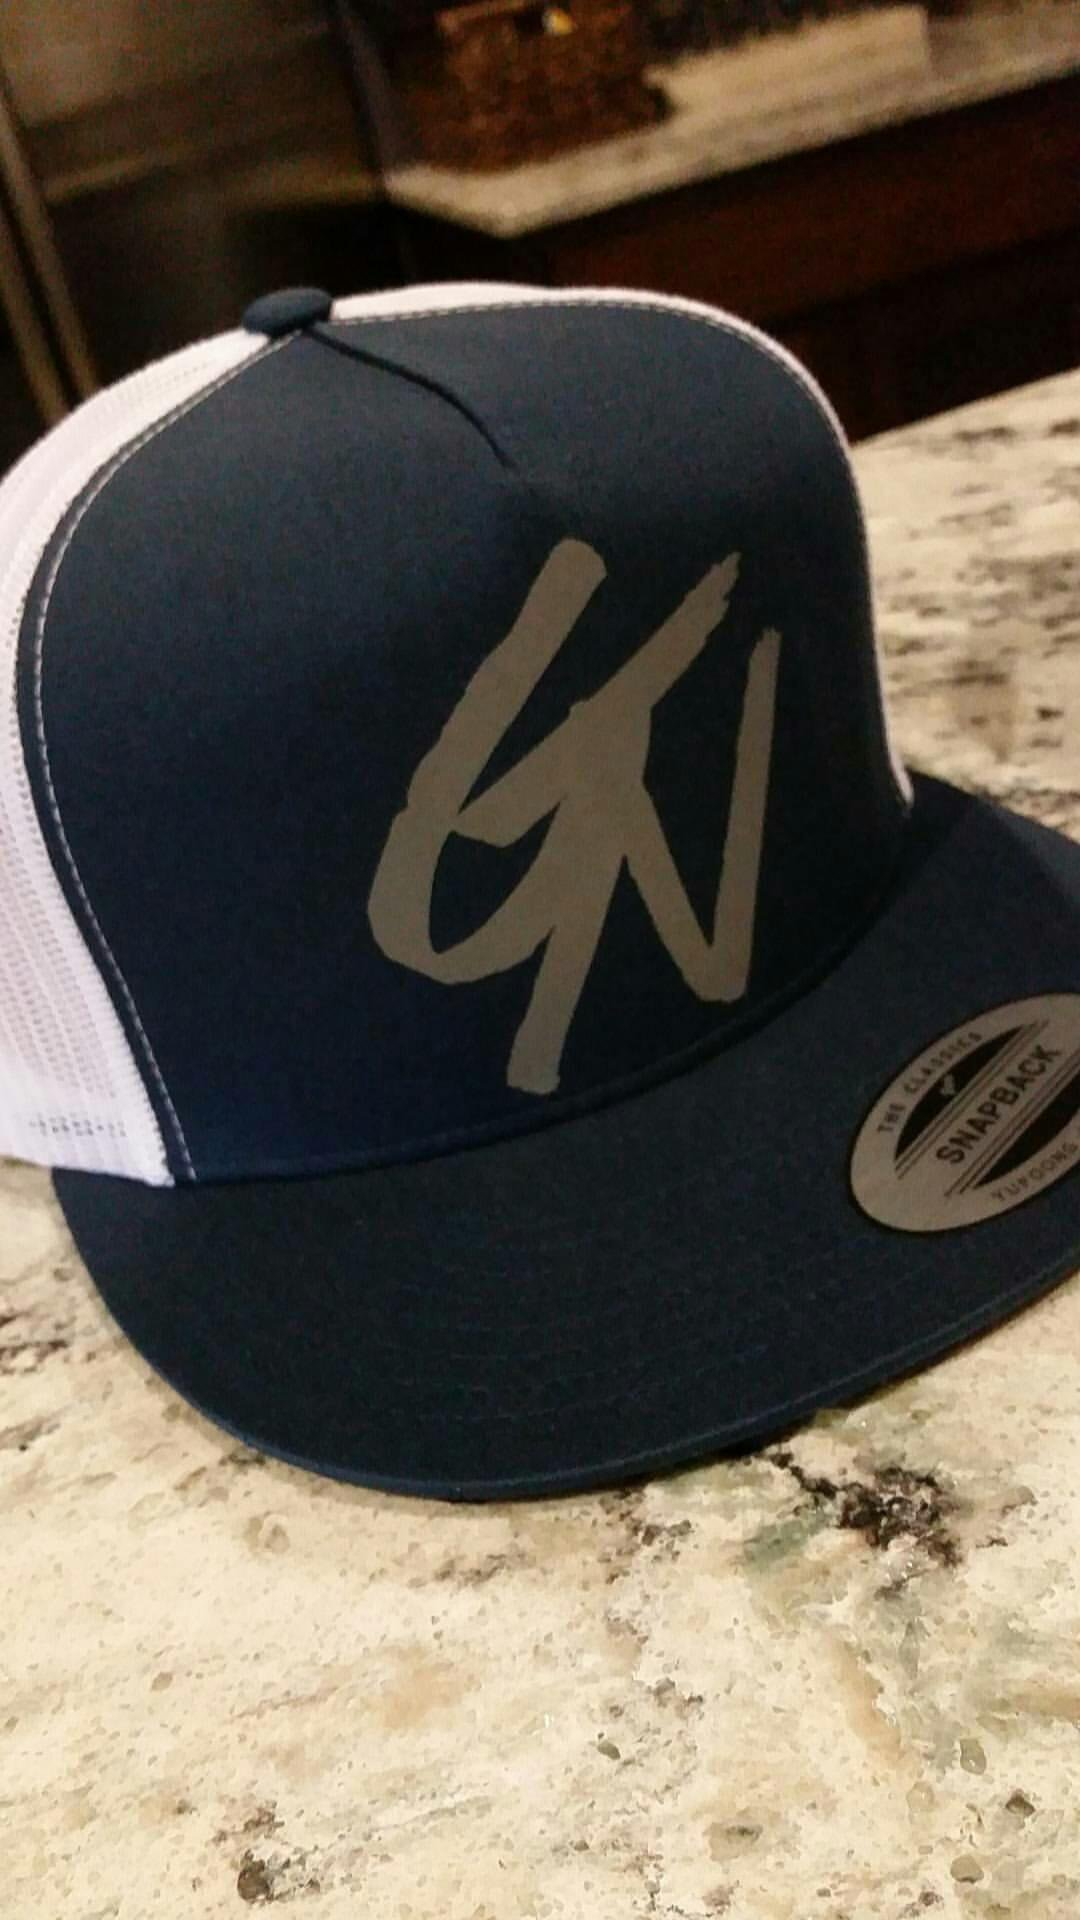 Gnar nation trucker hat